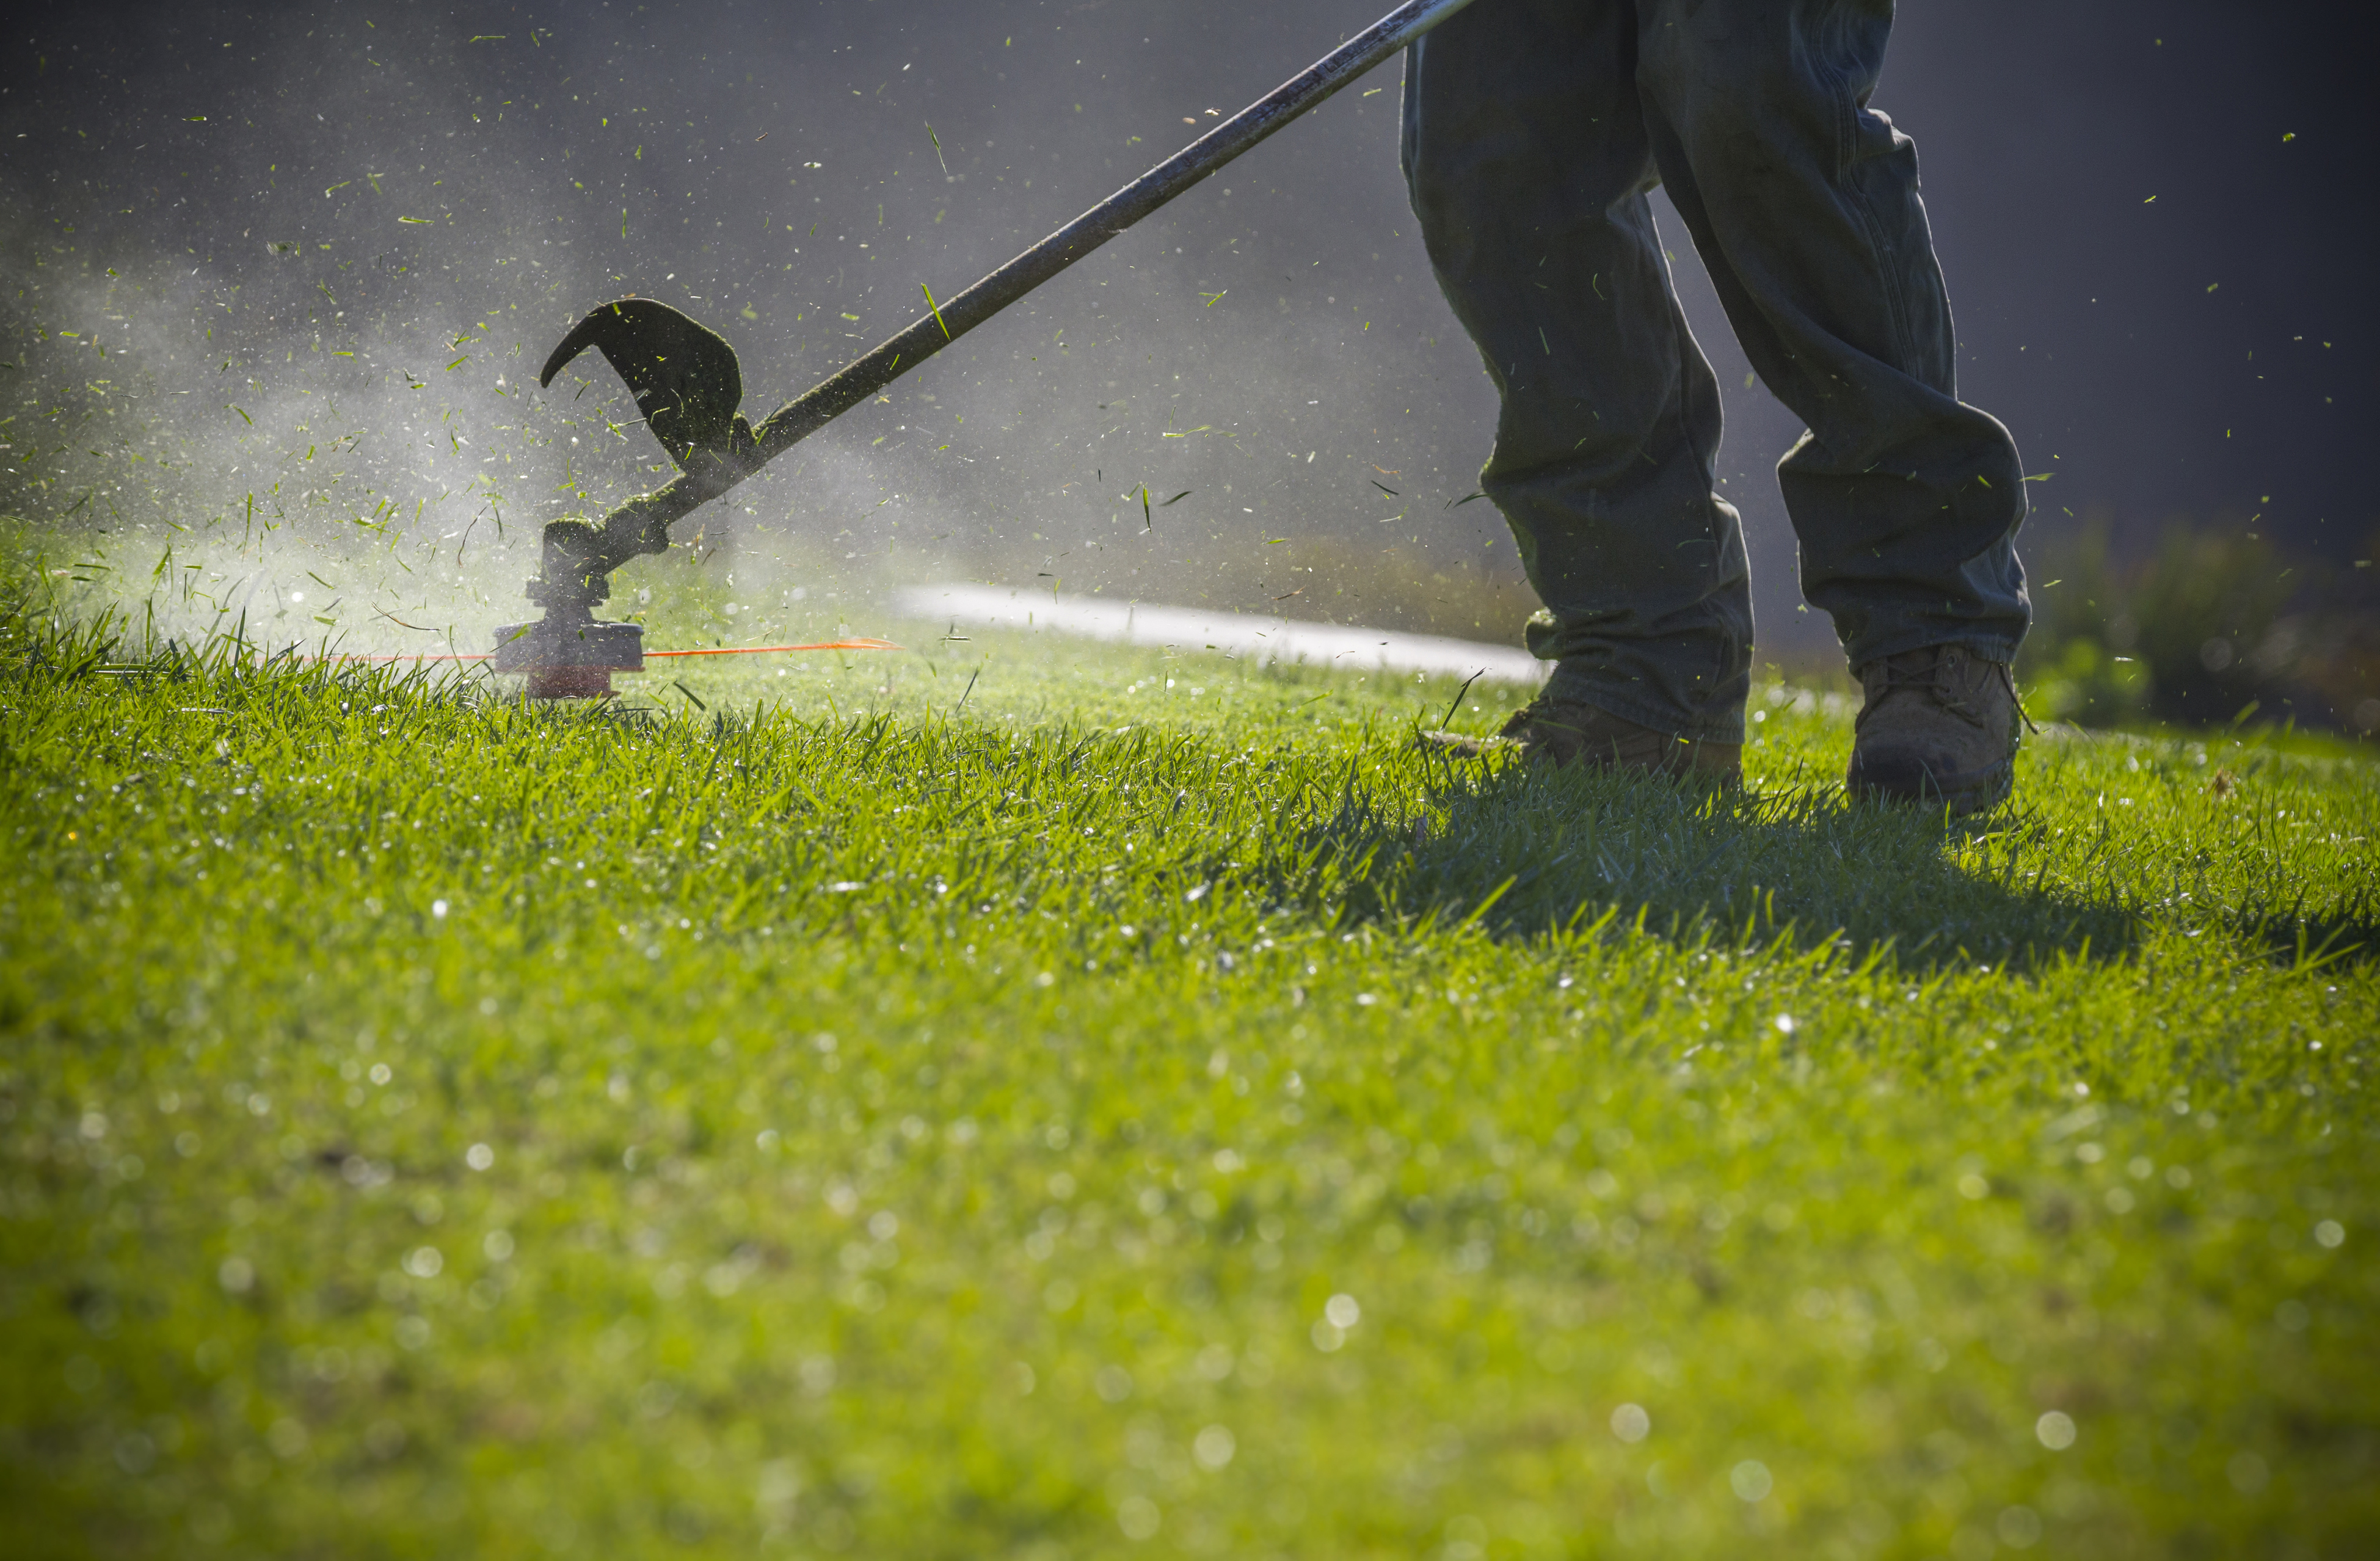 Why Does the Primer Bubble Collapse on My Weed Eater? | Hunker